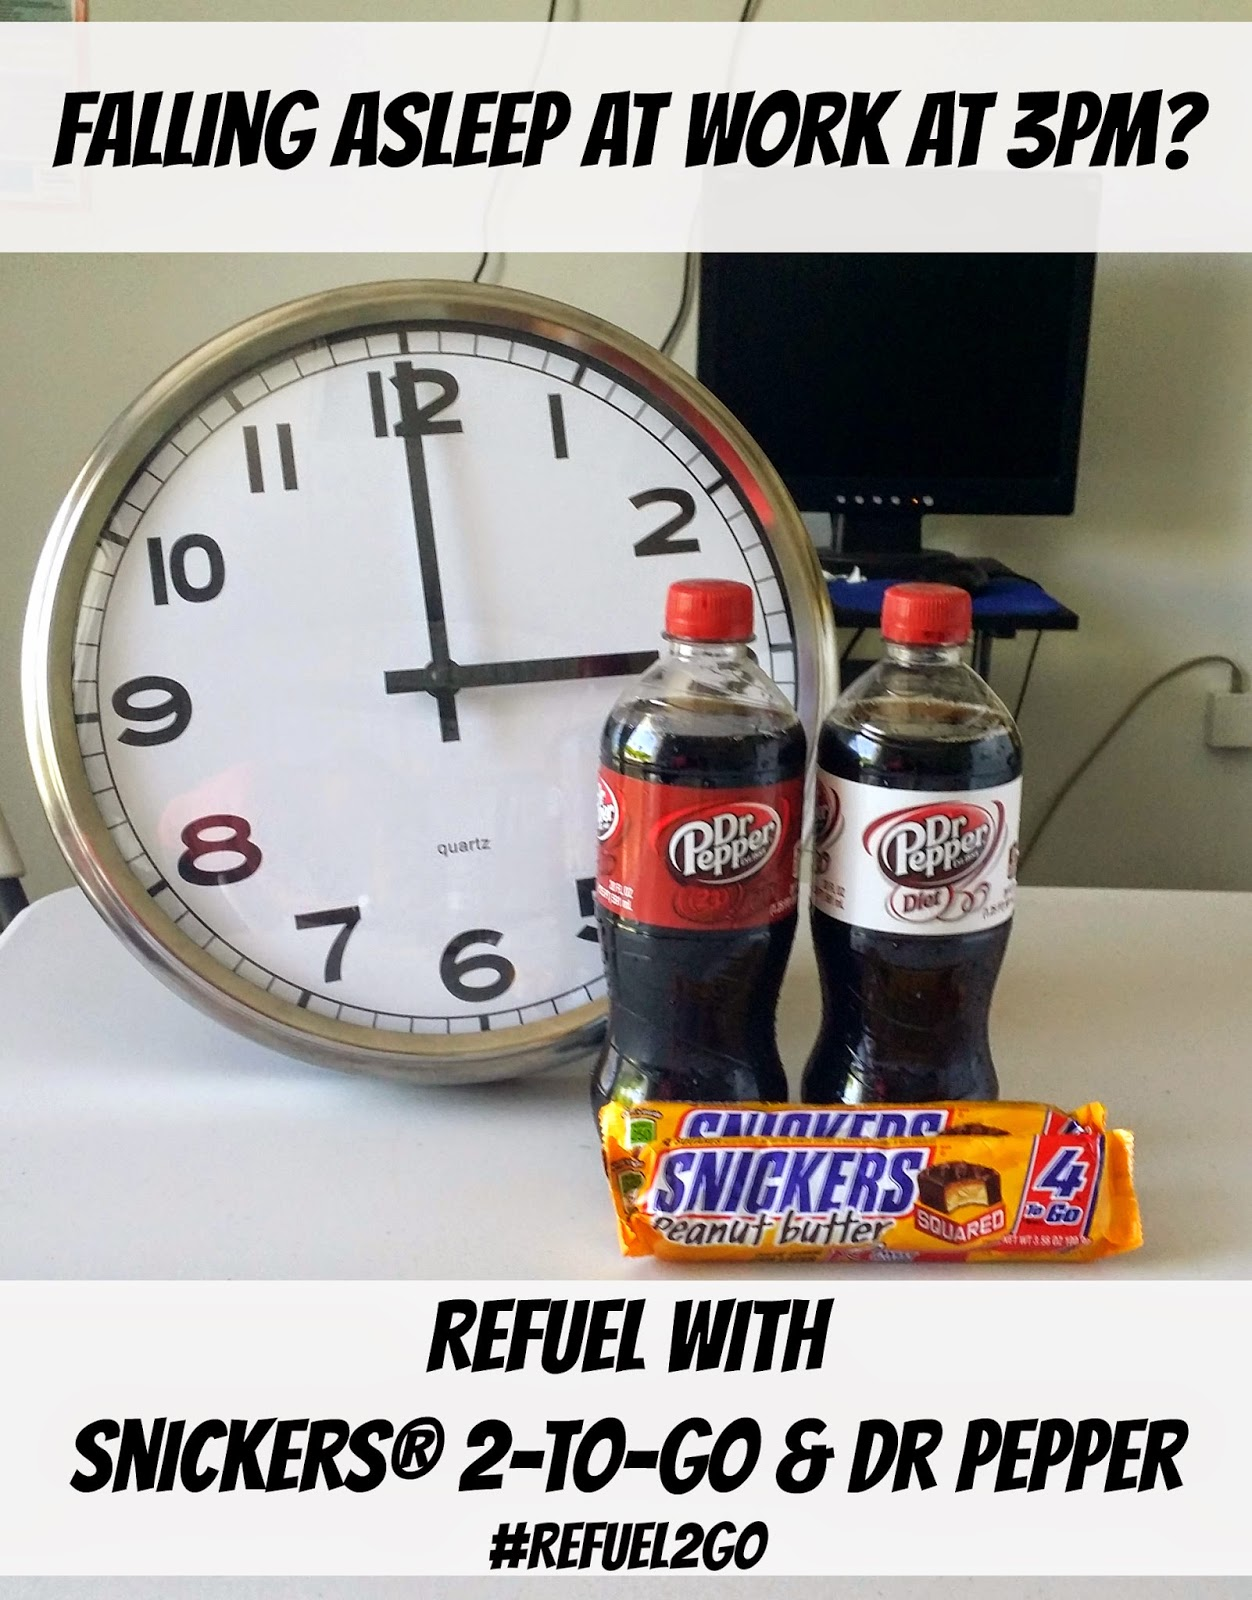 Beat the afternoon slump! Refuel with SNICKERS® 2-to-go and Dr Pepper #Refuel2Go #shop